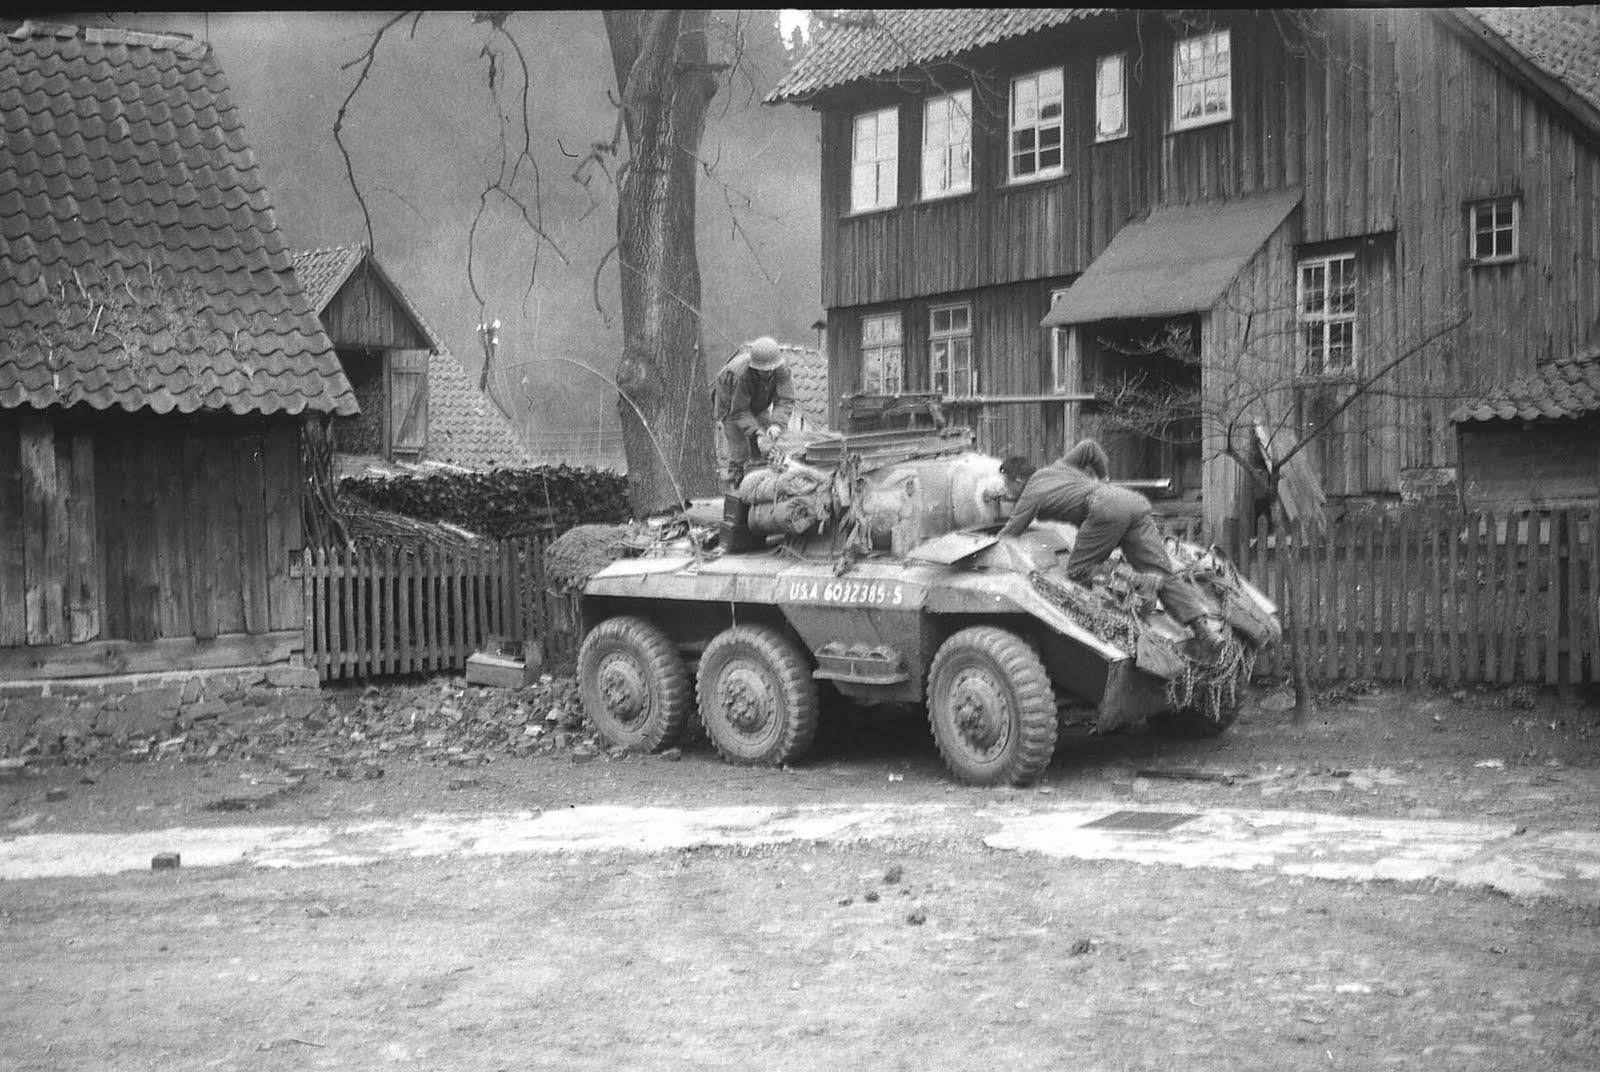 https://flic.kr/p/rWafeb | An M8 armoured car of the 4th Cavalry Reconnaissance Squadron, Germany 1945.